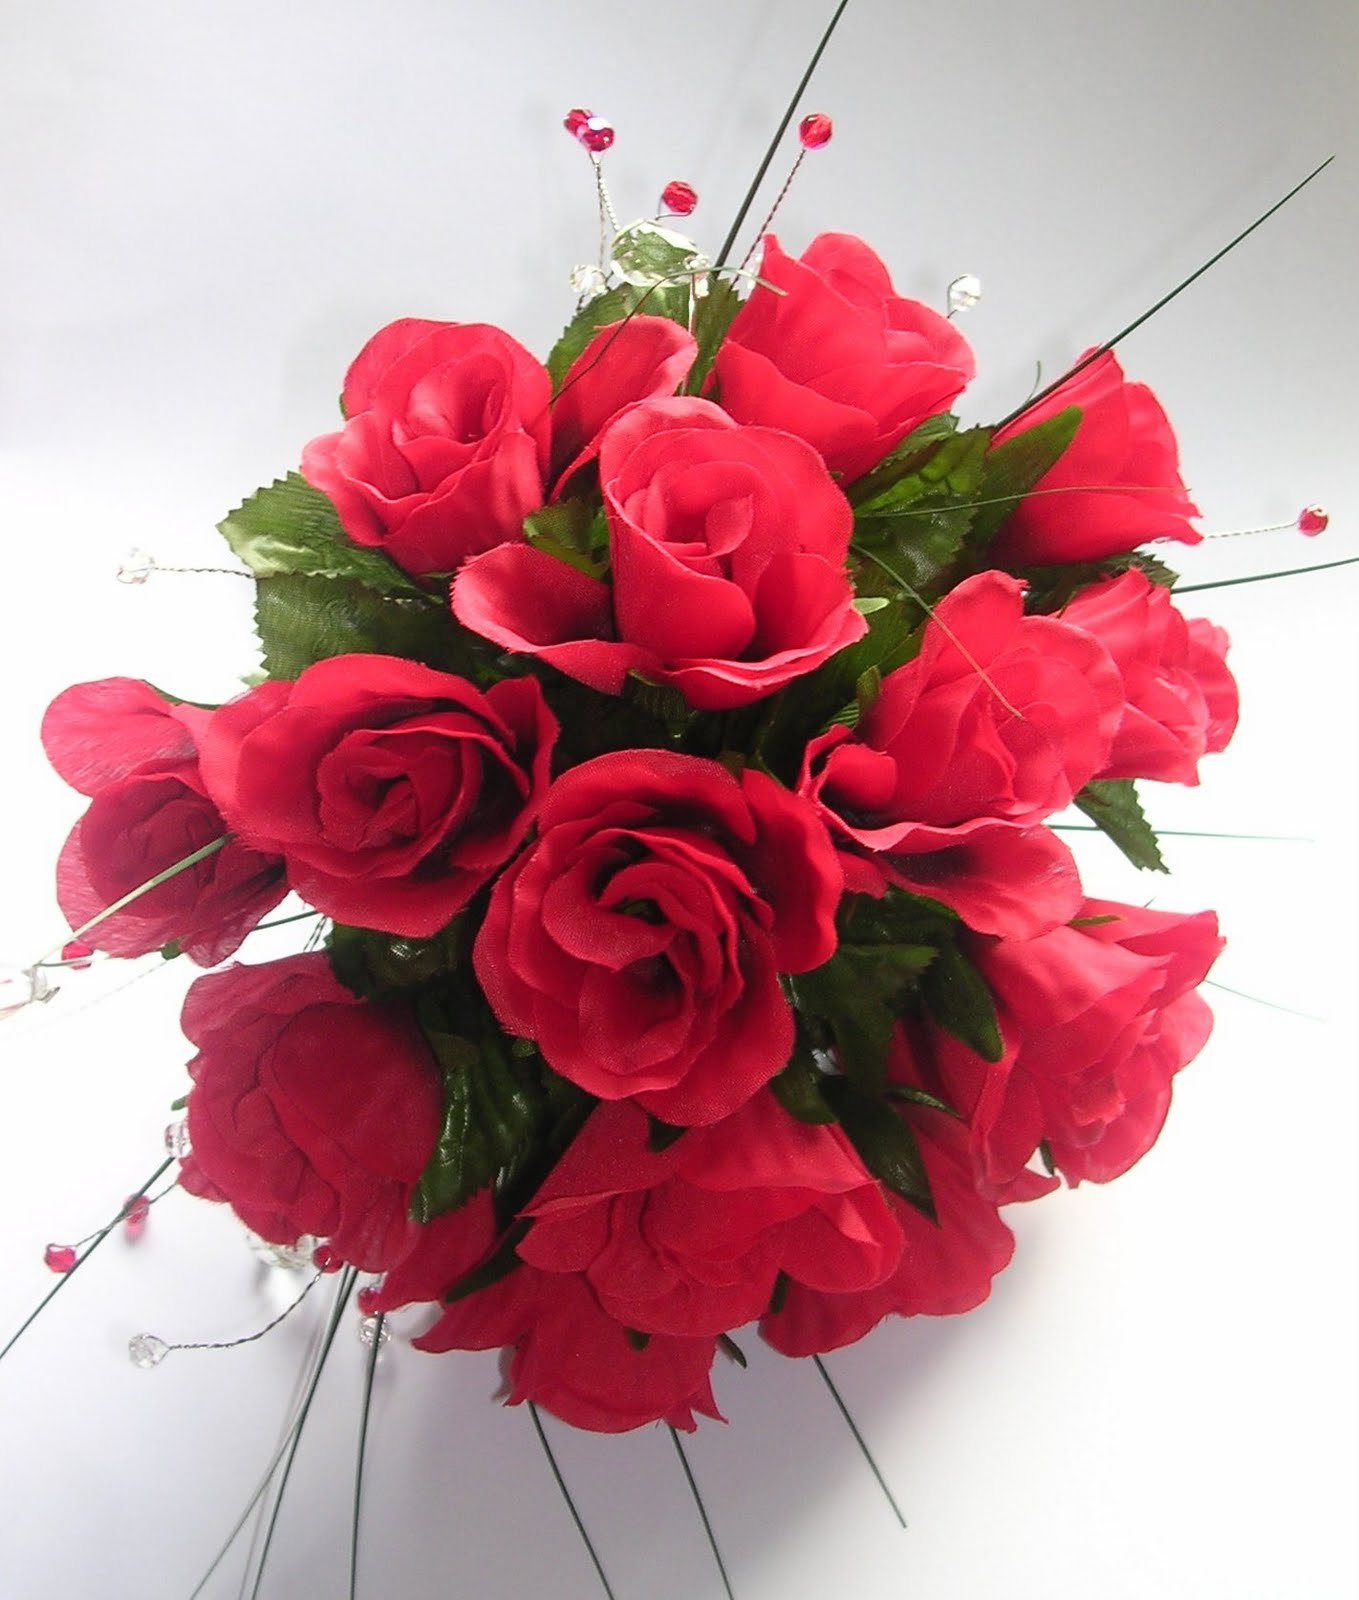 Crystal Velvet Weddings Wedding Flowers Rose Bouquet Red